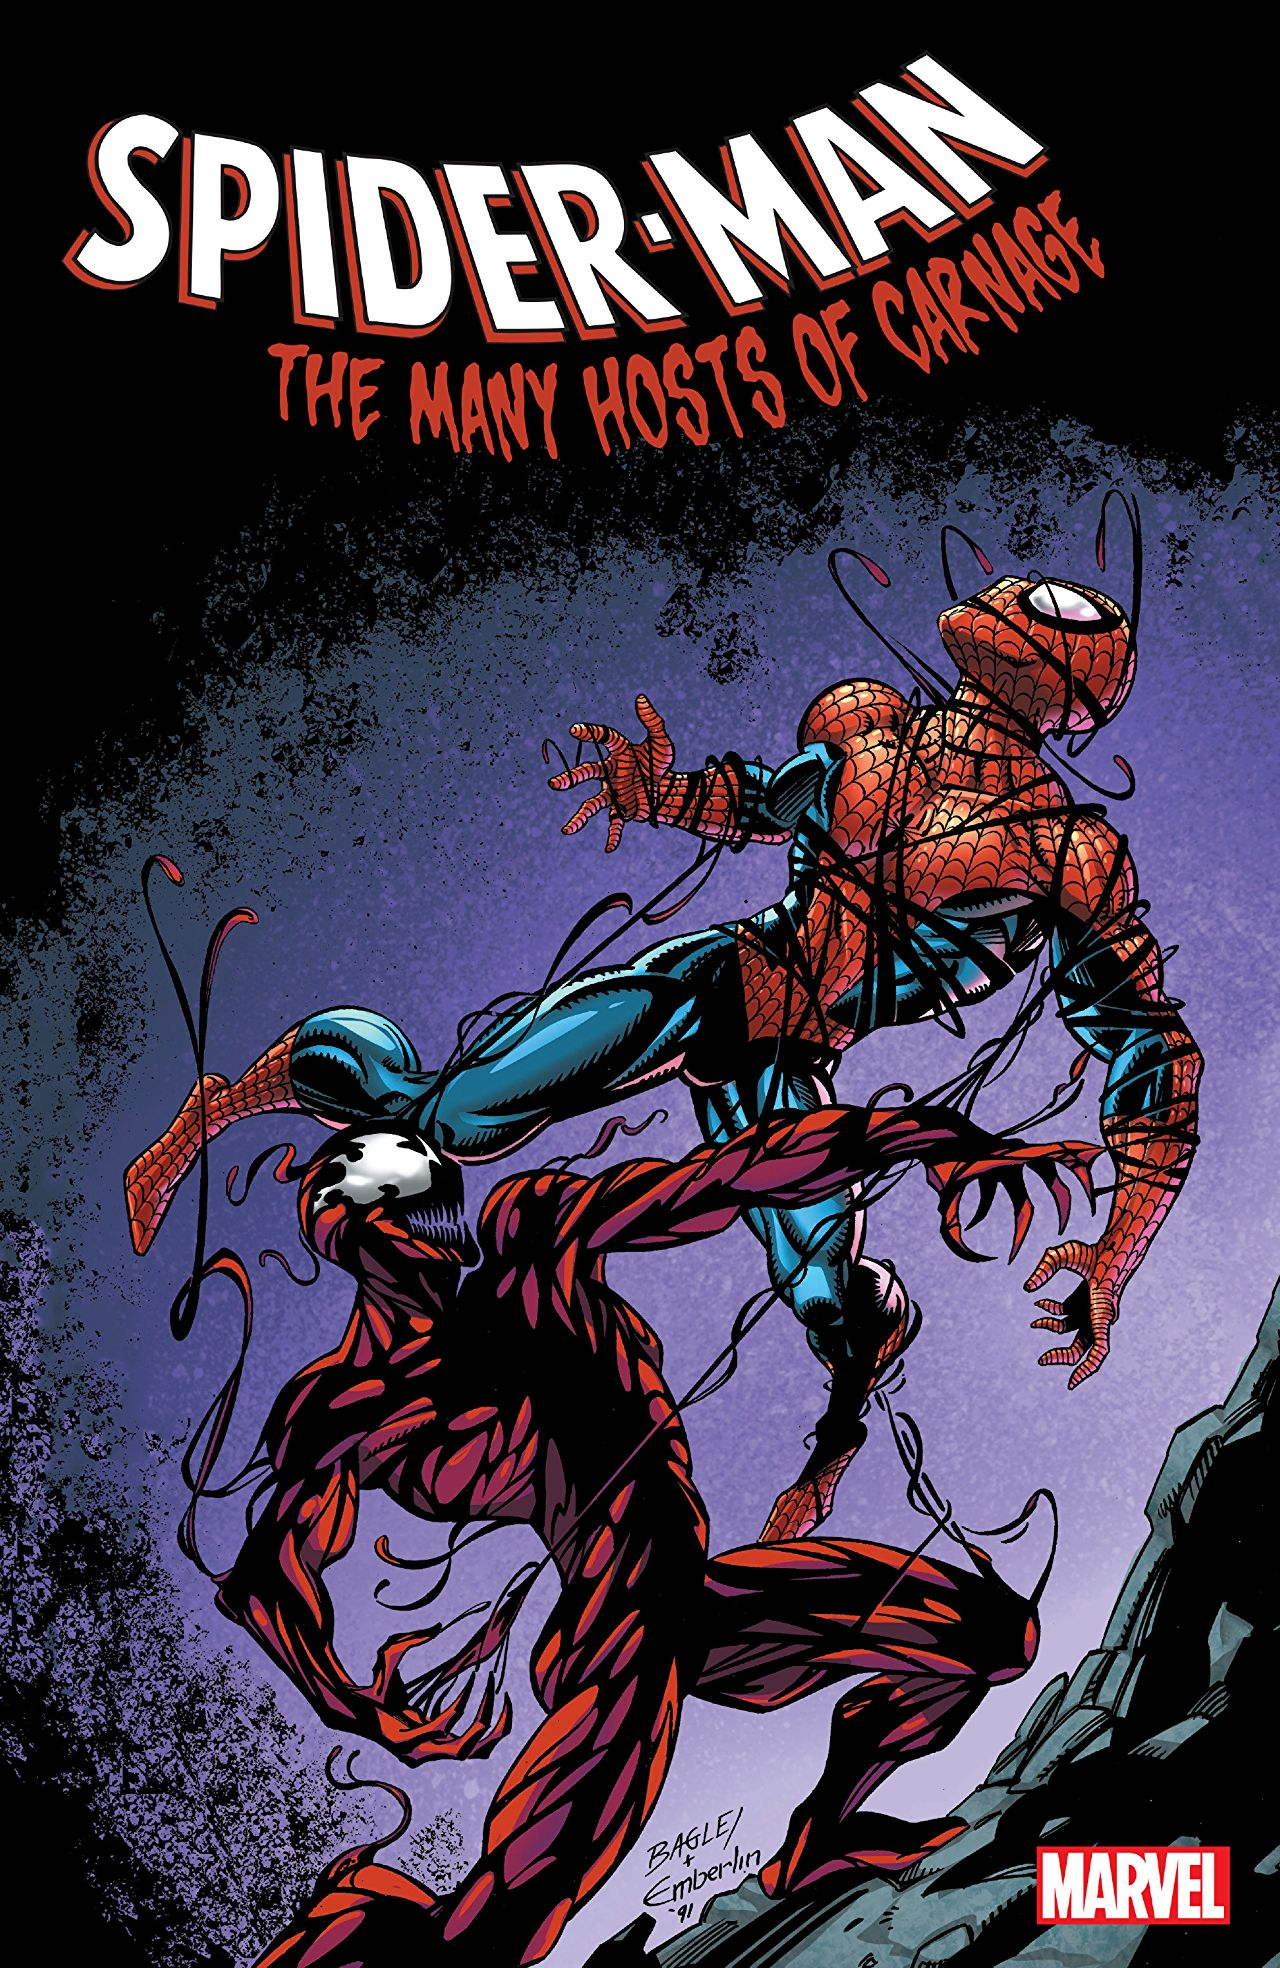 'Spider-Man: The Many Hosts of Carnage' TPB Review